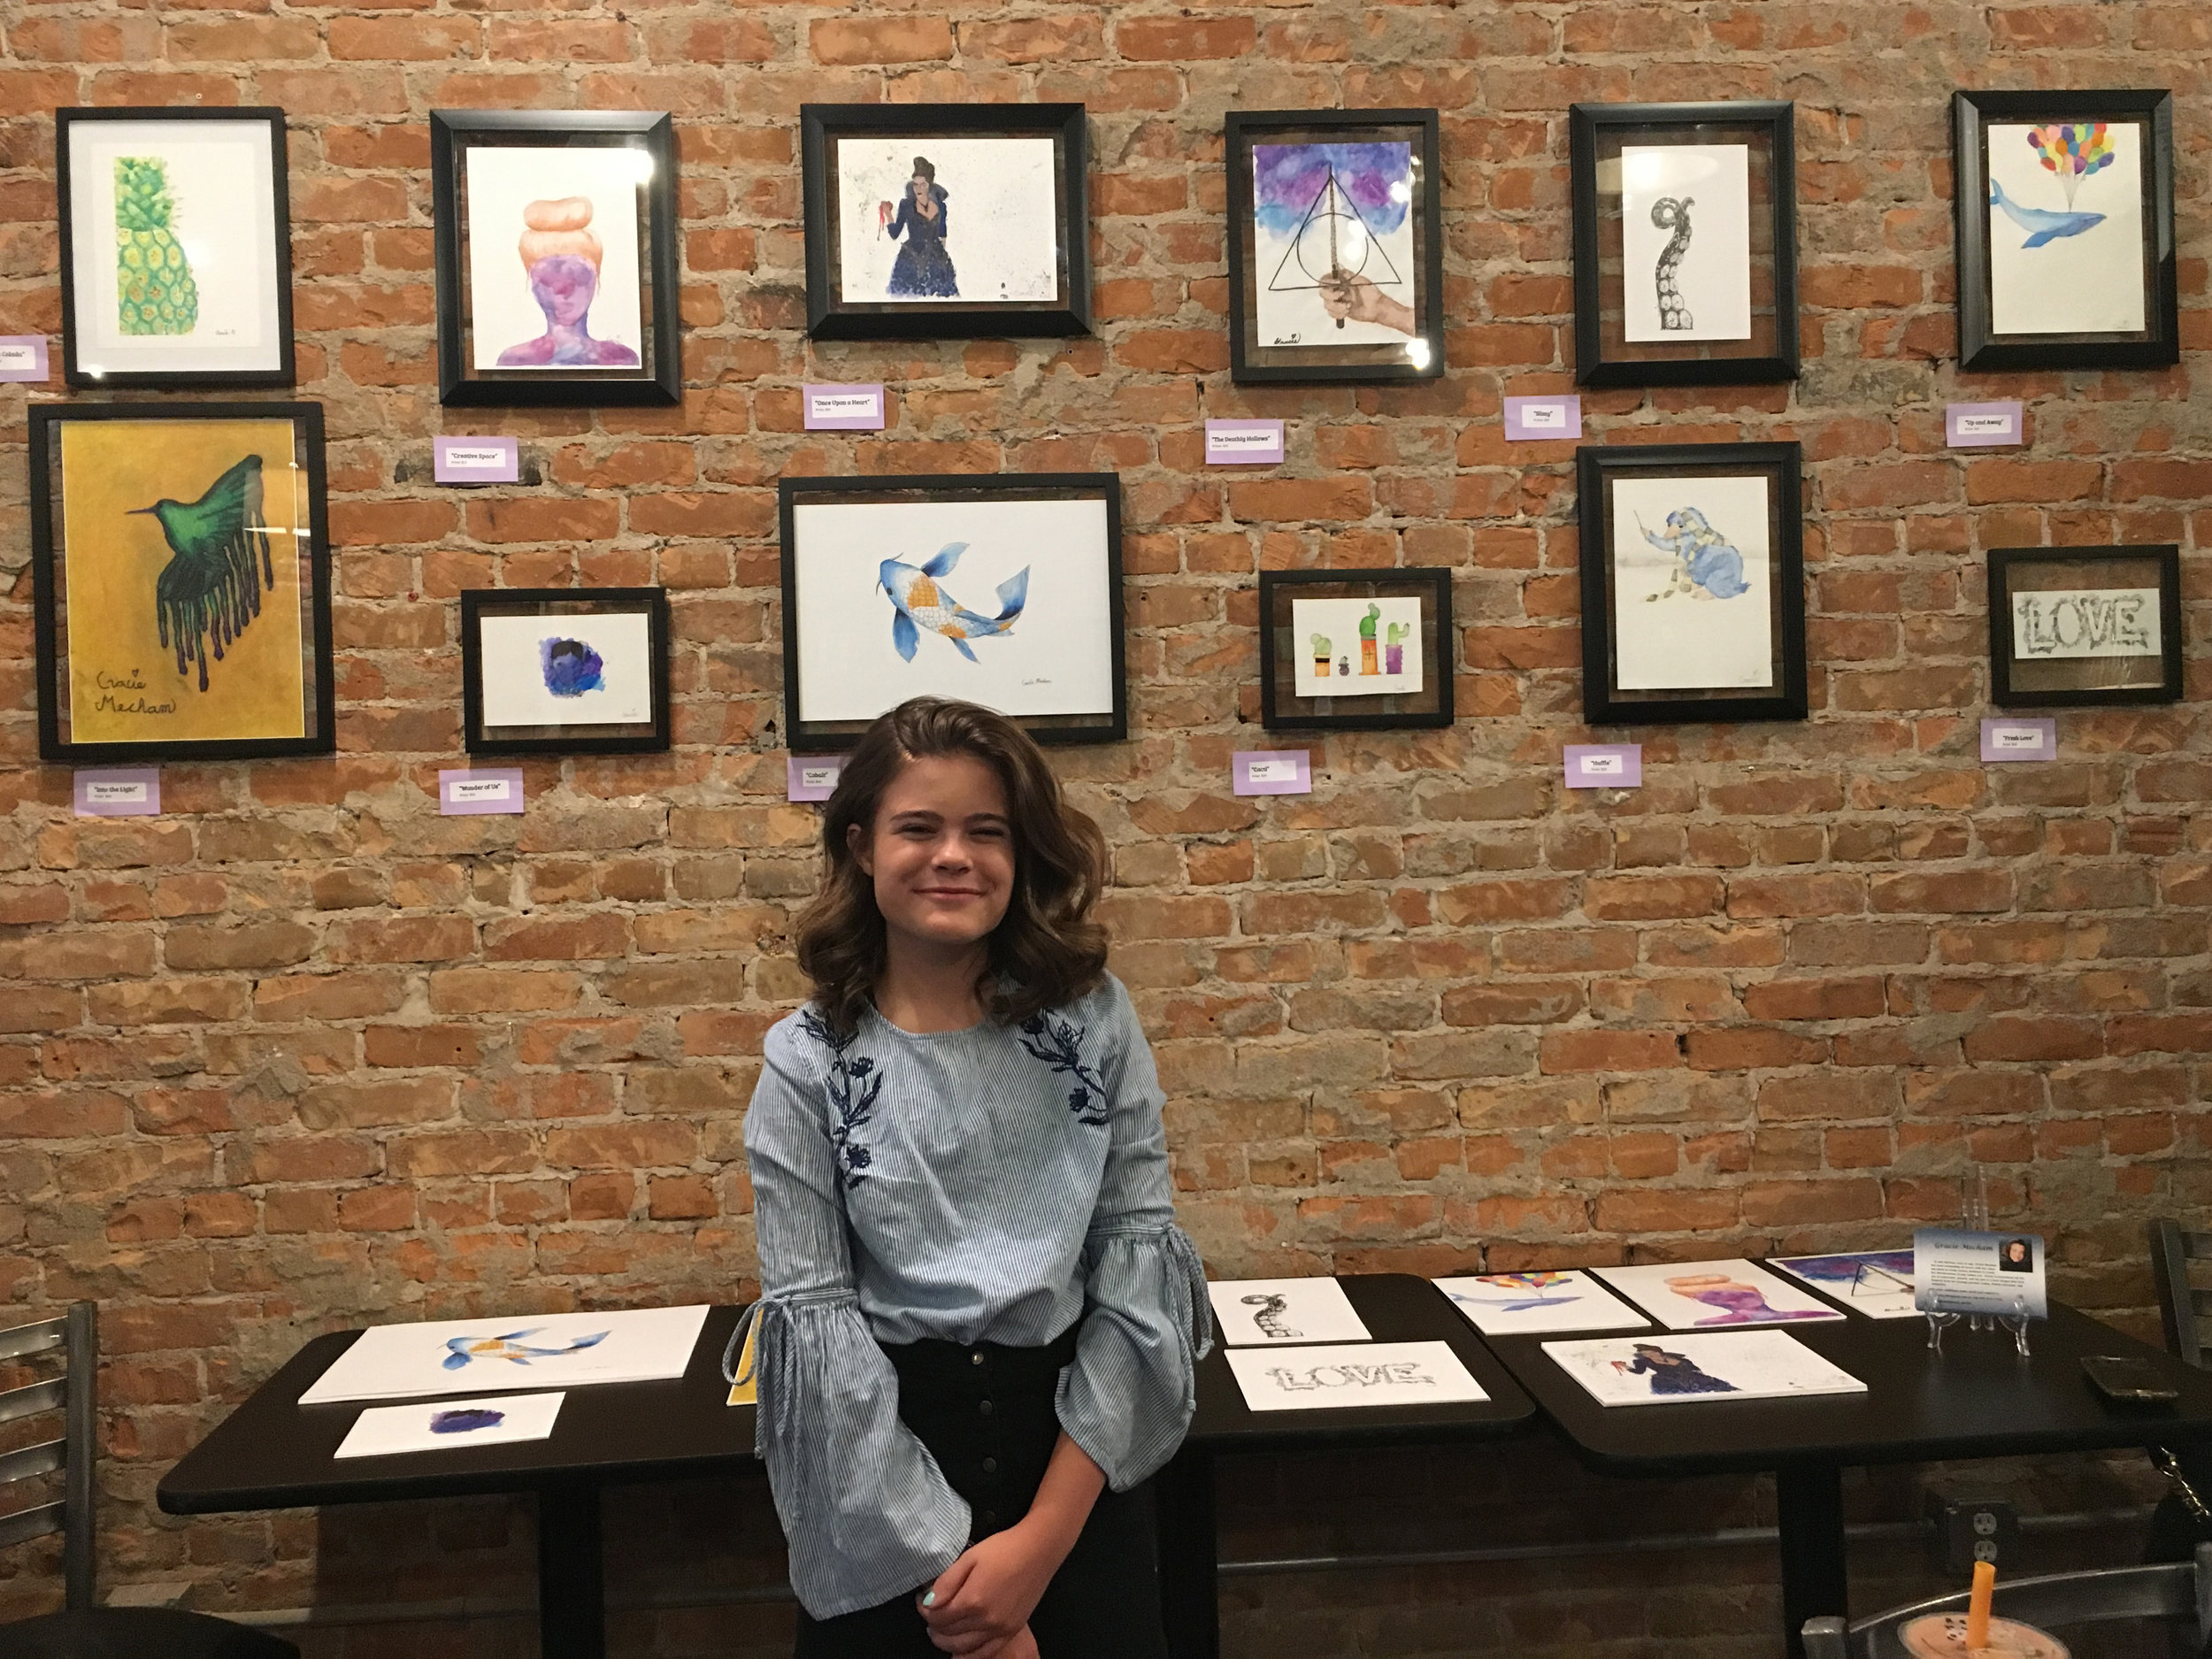 Thirteen-year-old Gracie shows off her work at First Friday Art Stroll September 2018.